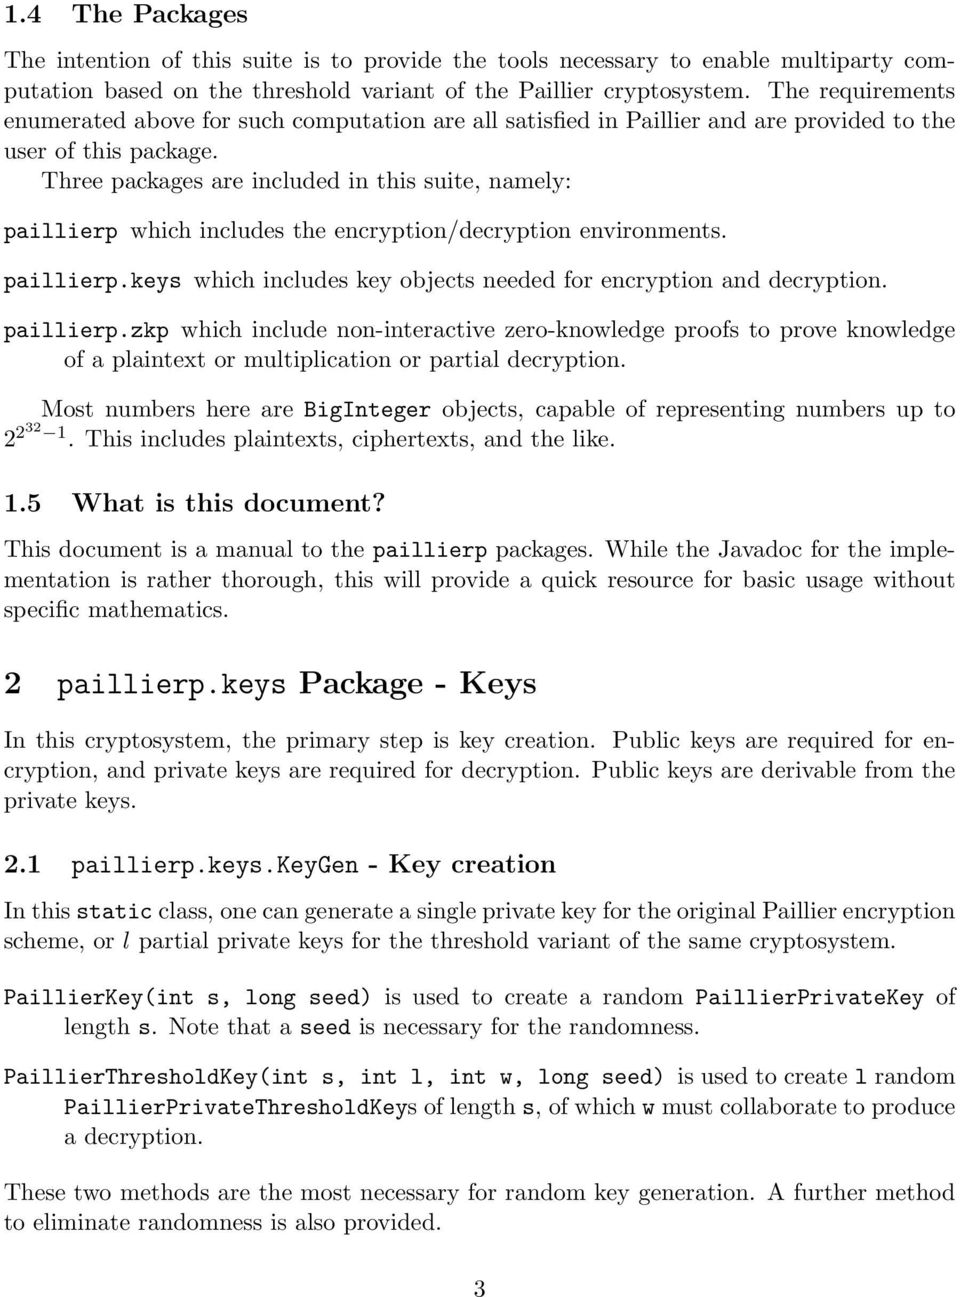 Three packages are included in this suite, namely: paillierp which includes the encryption/decryption environments. paillierp.keys which includes key objects needed for encryption and decryption.